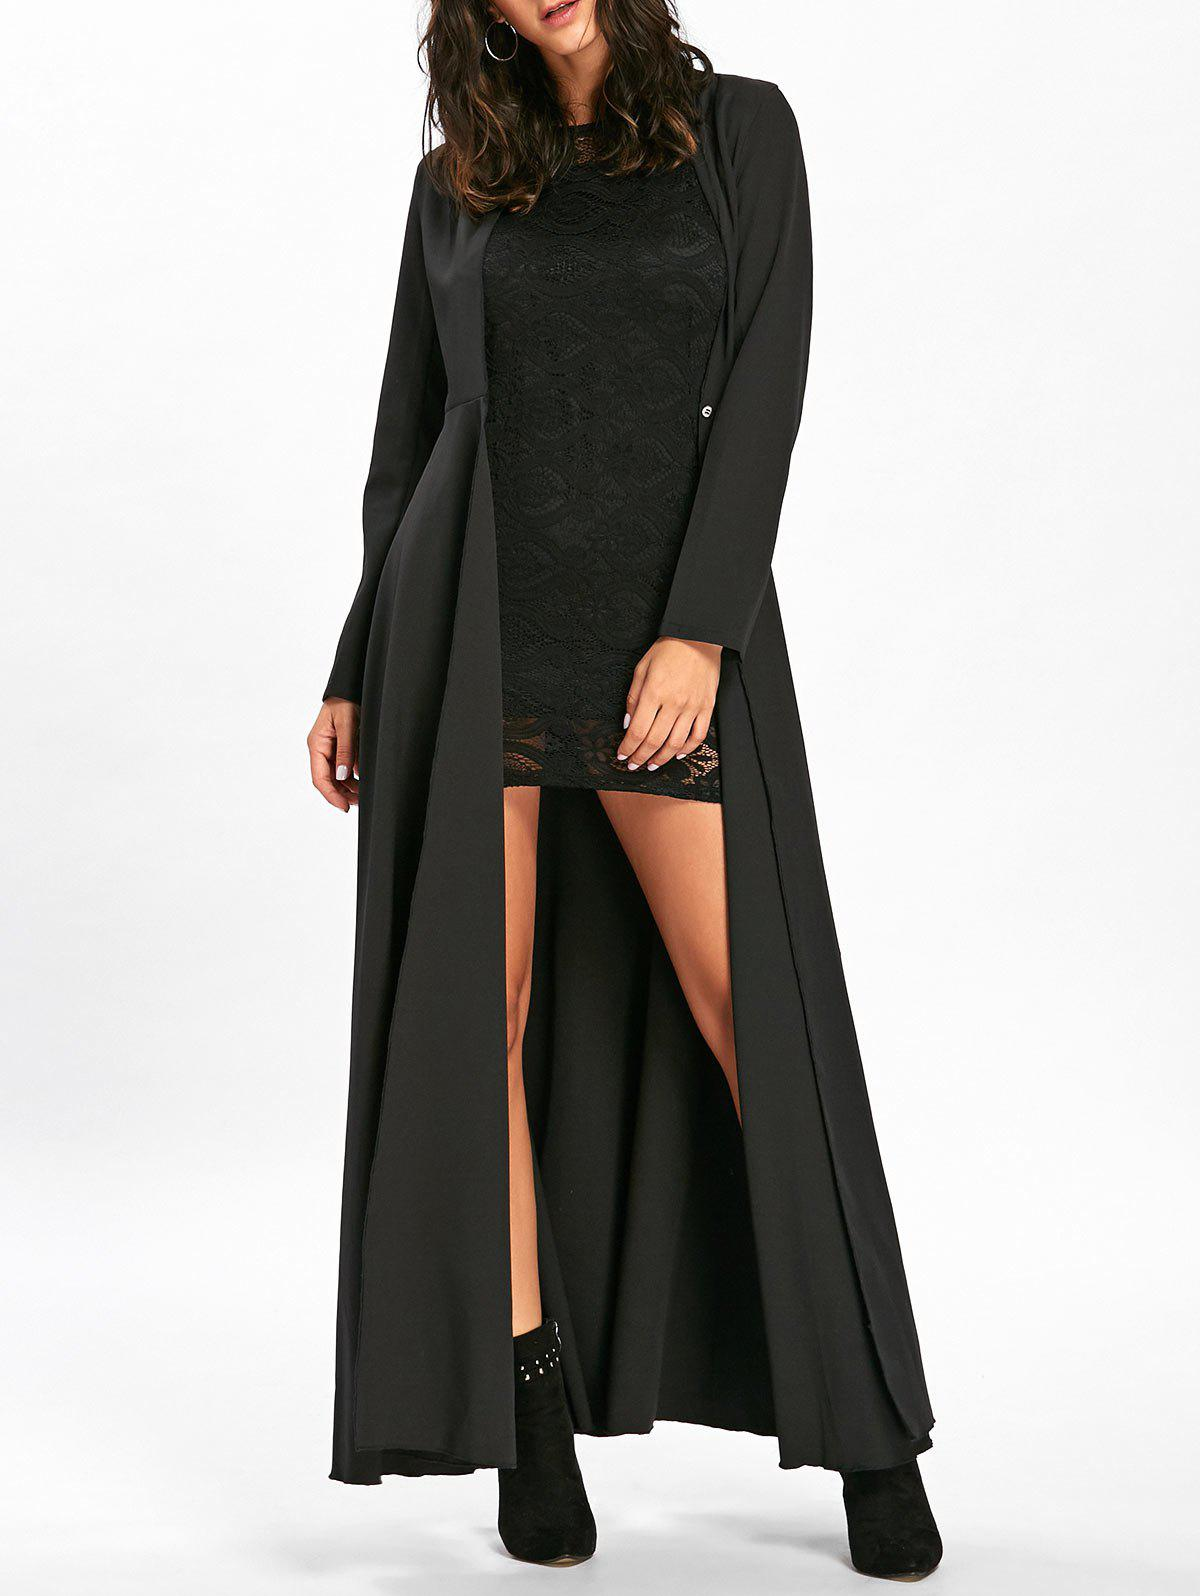 Bodycon Lace Mini Dress with Long CoatWOMEN<br><br>Size: L; Color: BLACK; Clothes Type: Others; Material: Polyester,Spandex; Type: Slim; Shirt Length: Long; Sleeve Length: Full; Sleeve Type: Batwing Sleeve; Collar: Convertible Collar; Pattern Type: Solid; Style: Fashion; Season: Fall,Spring; Weight: 0.5500kg; Package Contents: 1 x Dress   1 x Coat;